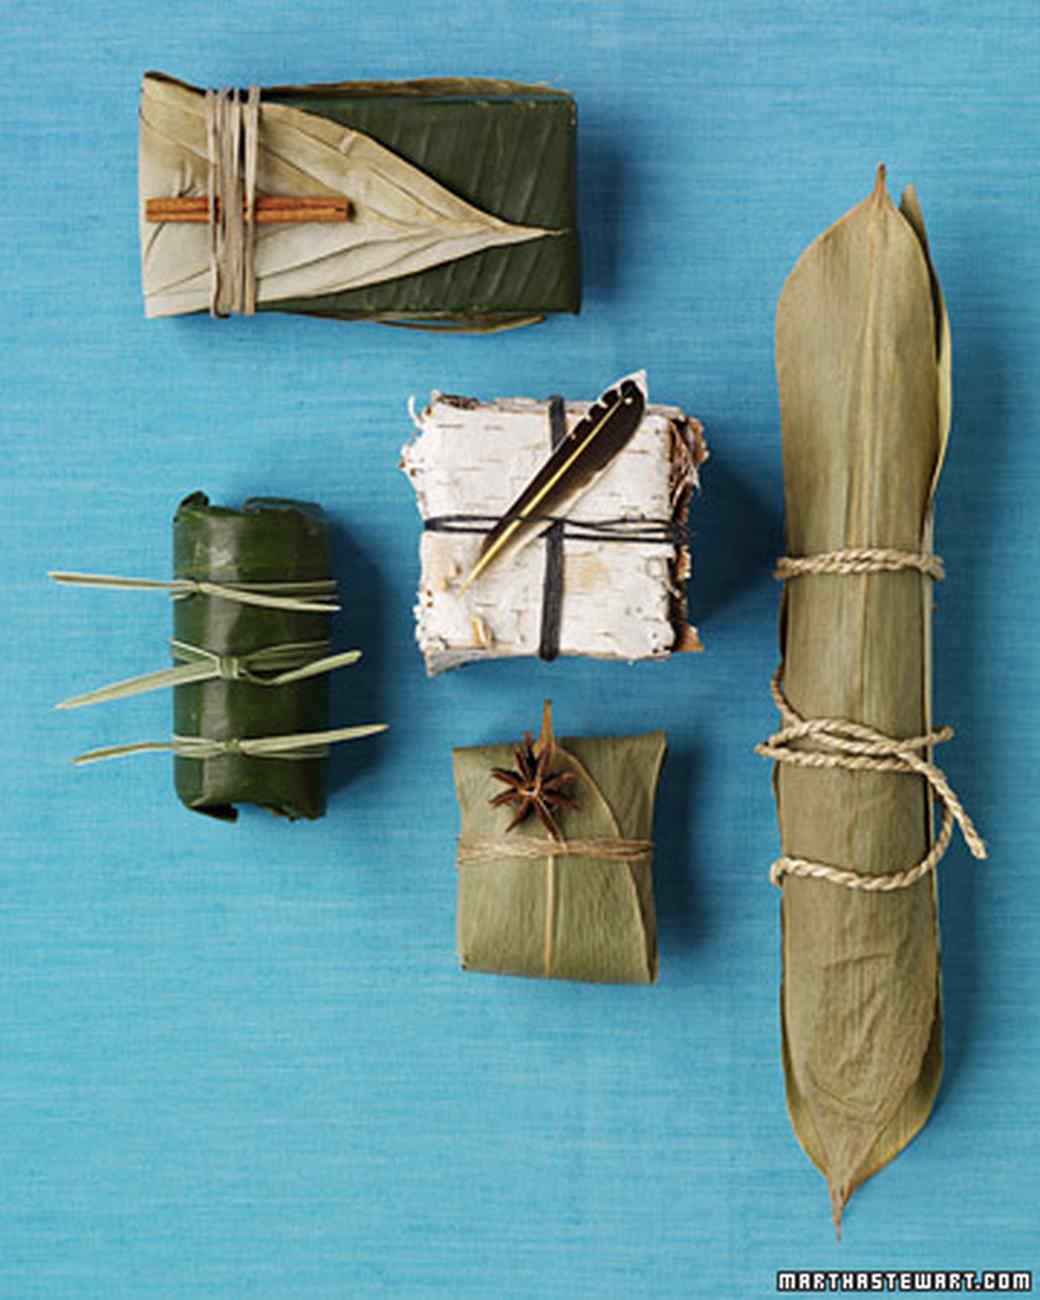 Turn to nature to wrap your gifts with big leaves. Very natural.